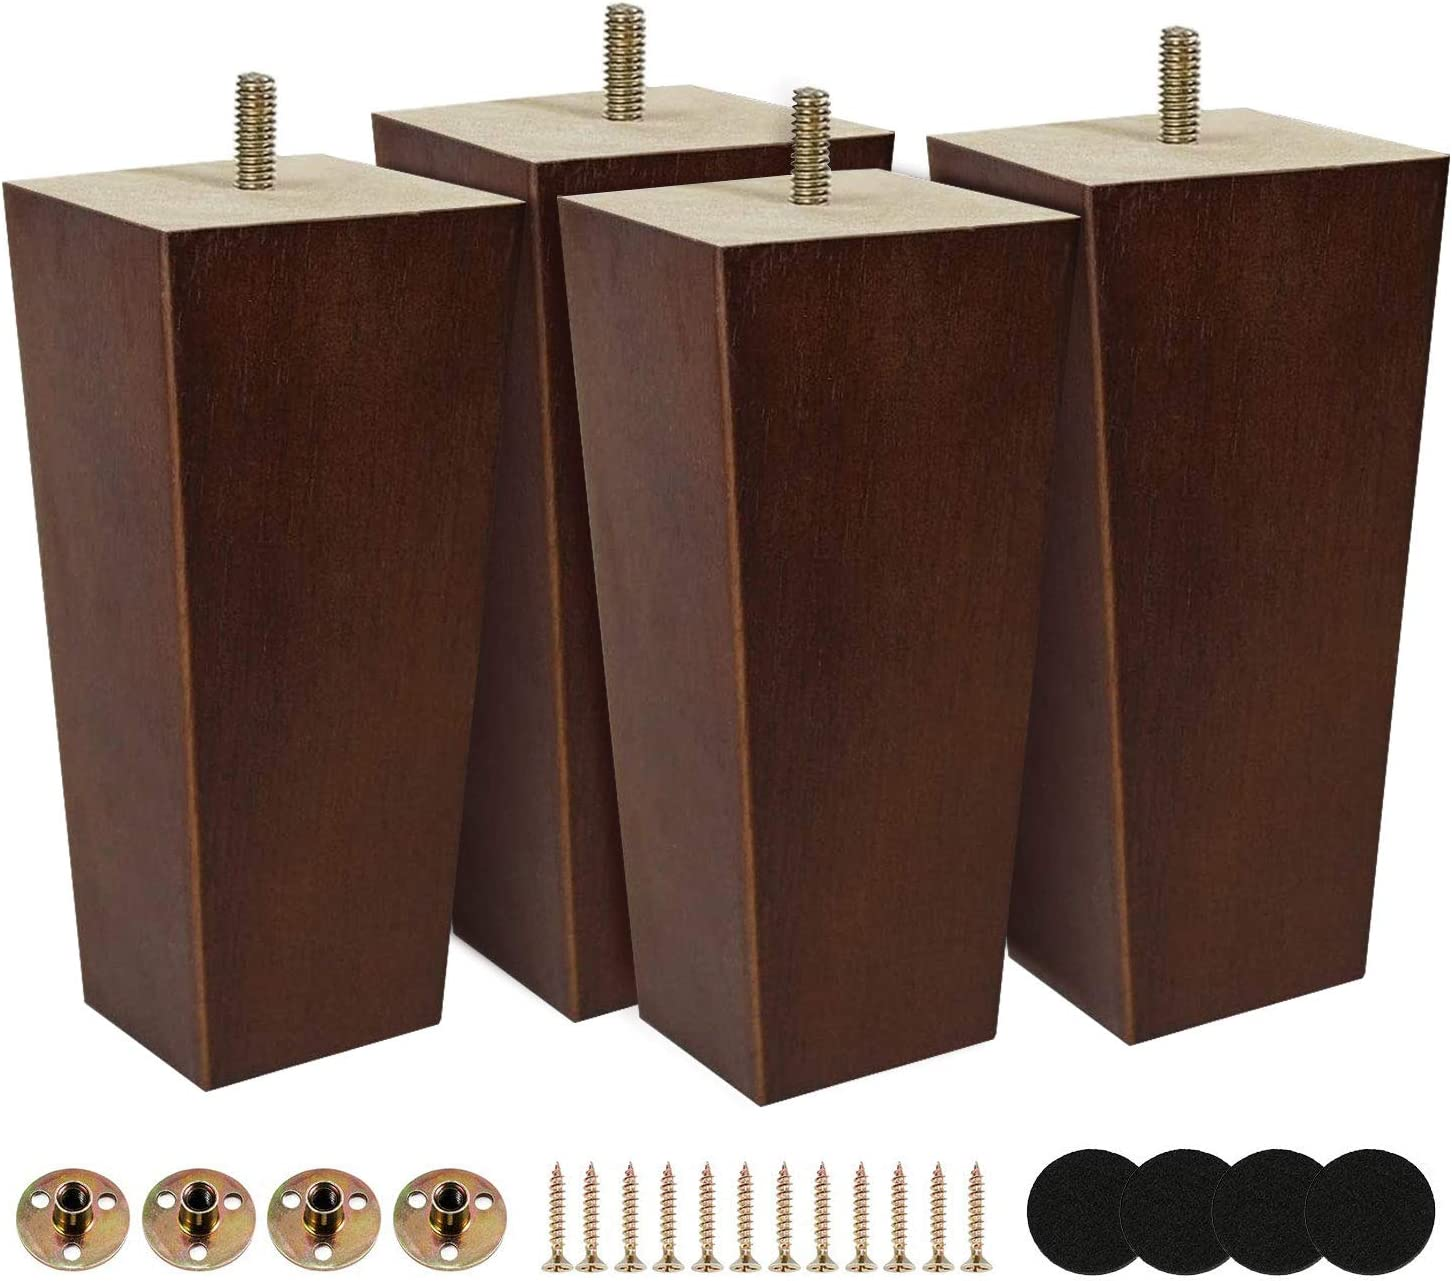 6 inch Furniture Legs Rubber Wood Made Modern Pyramid Couch Leg for Sofa Pack of 4